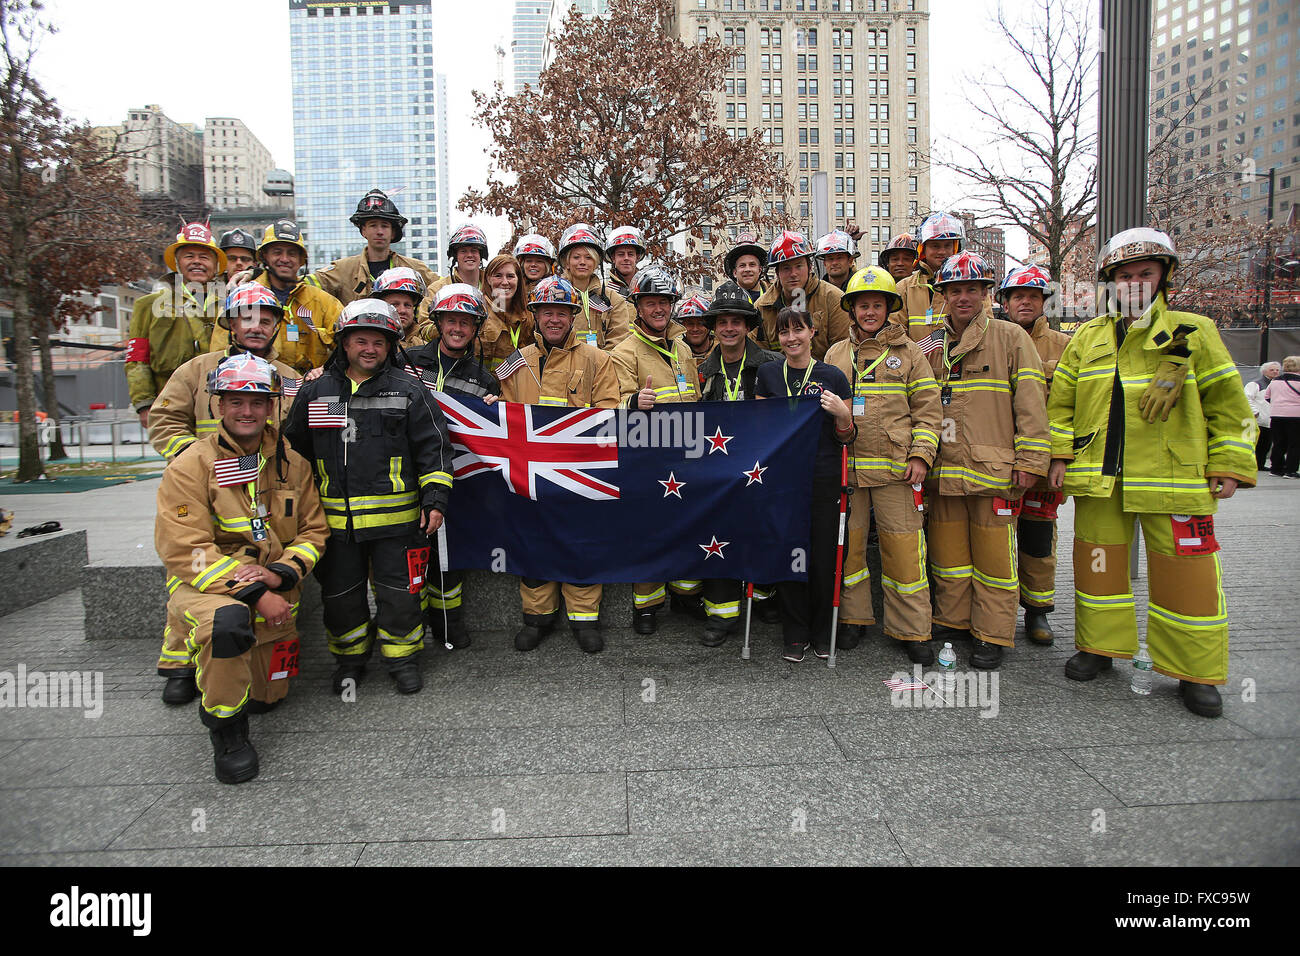 New York City, NY, USA. 13th Mar, 2016. 343 Firefighters from across the world gather to climb Four World Trade - Stock Image